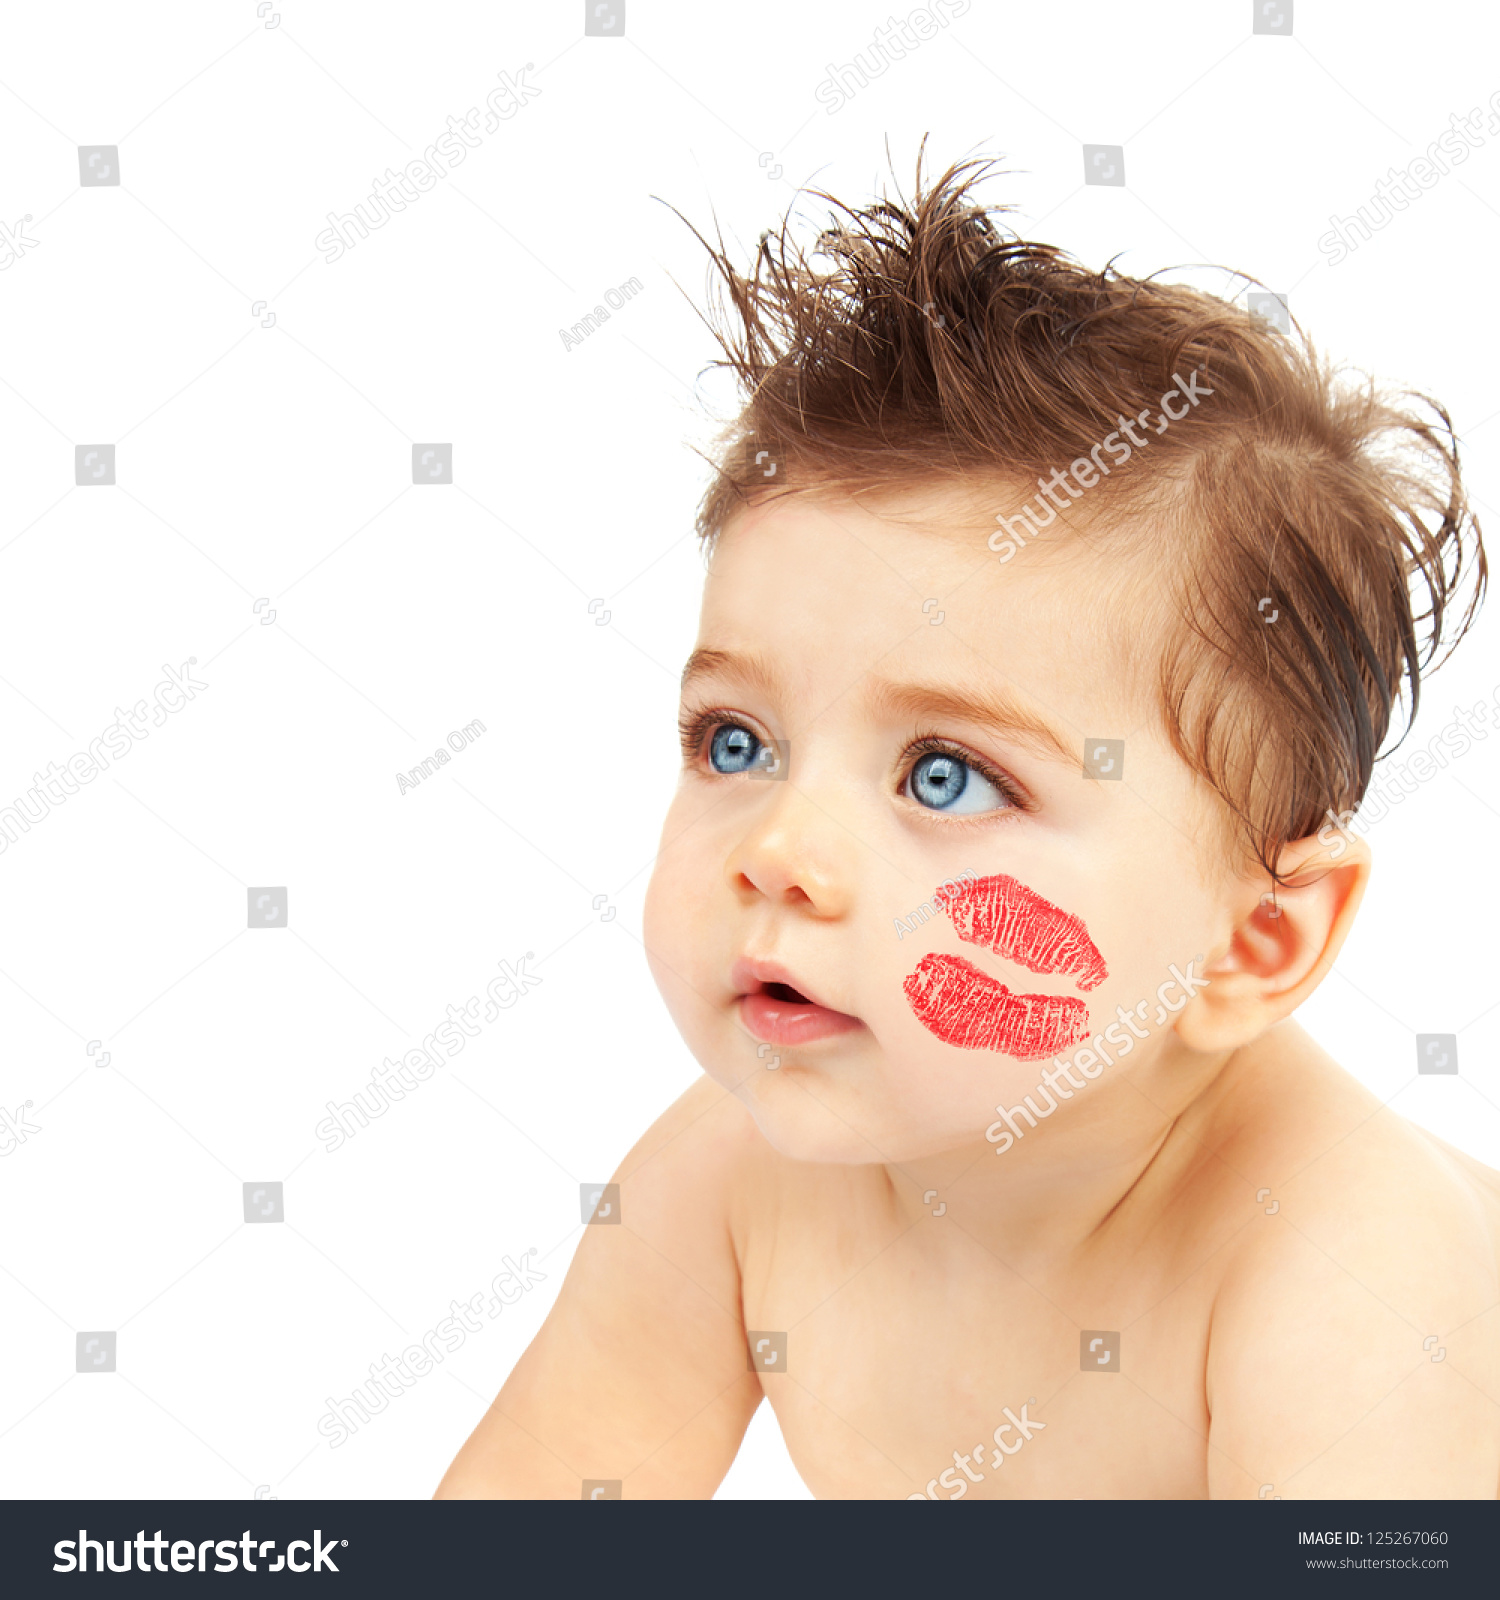 photo cute baby boy red kiss stock photo (edit now)- shutterstock